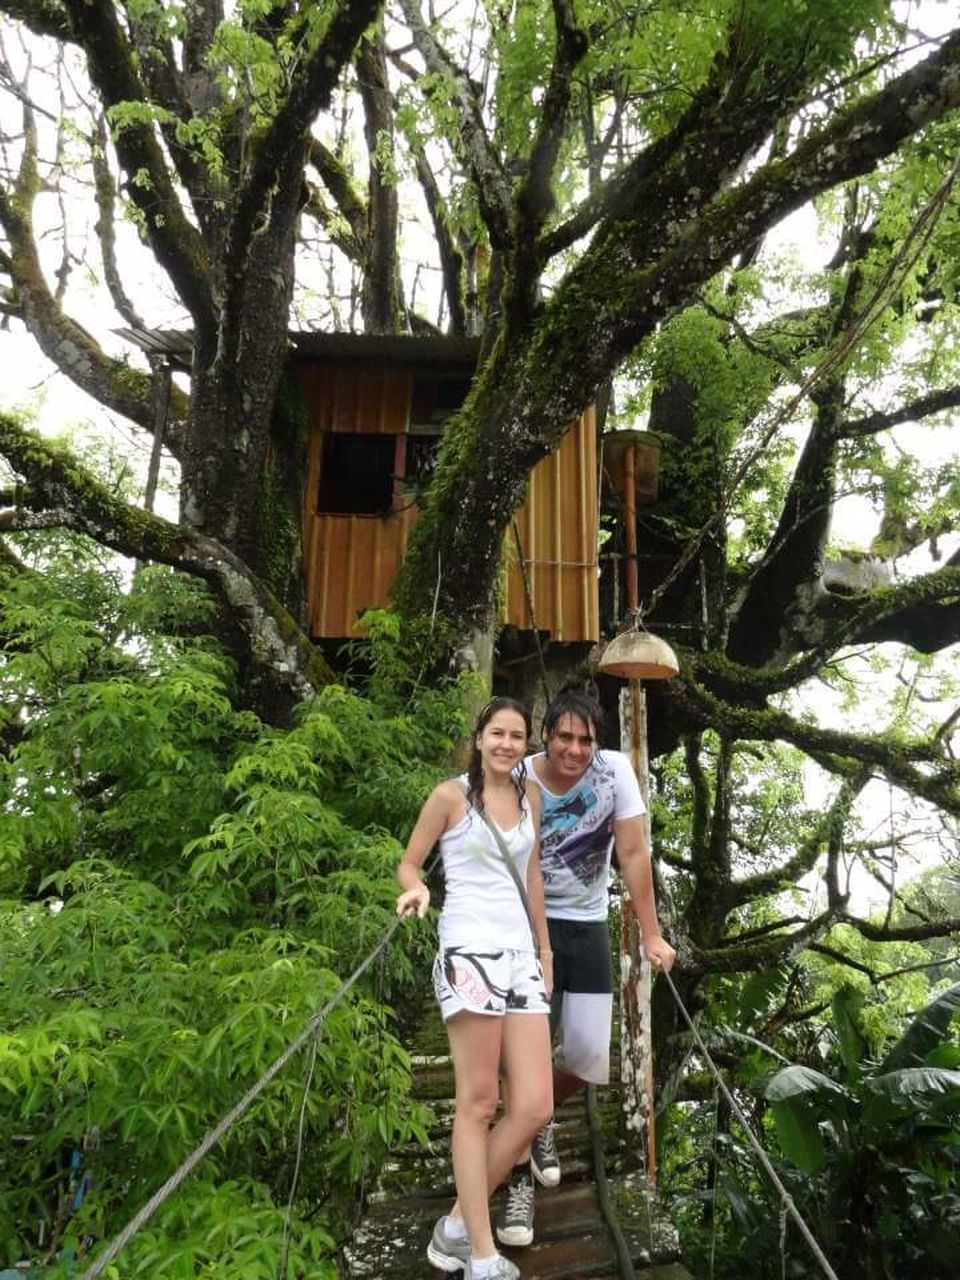 two people, tree, togetherness, young adult, young women, day, outdoors, leisure activity, heterosexual couple, front view, casual clothing, vacations, smiling, standing, happiness, love, adults only, bonding, branch, plant, full length, cheerful, nature, people, adult, building exterior, architecture